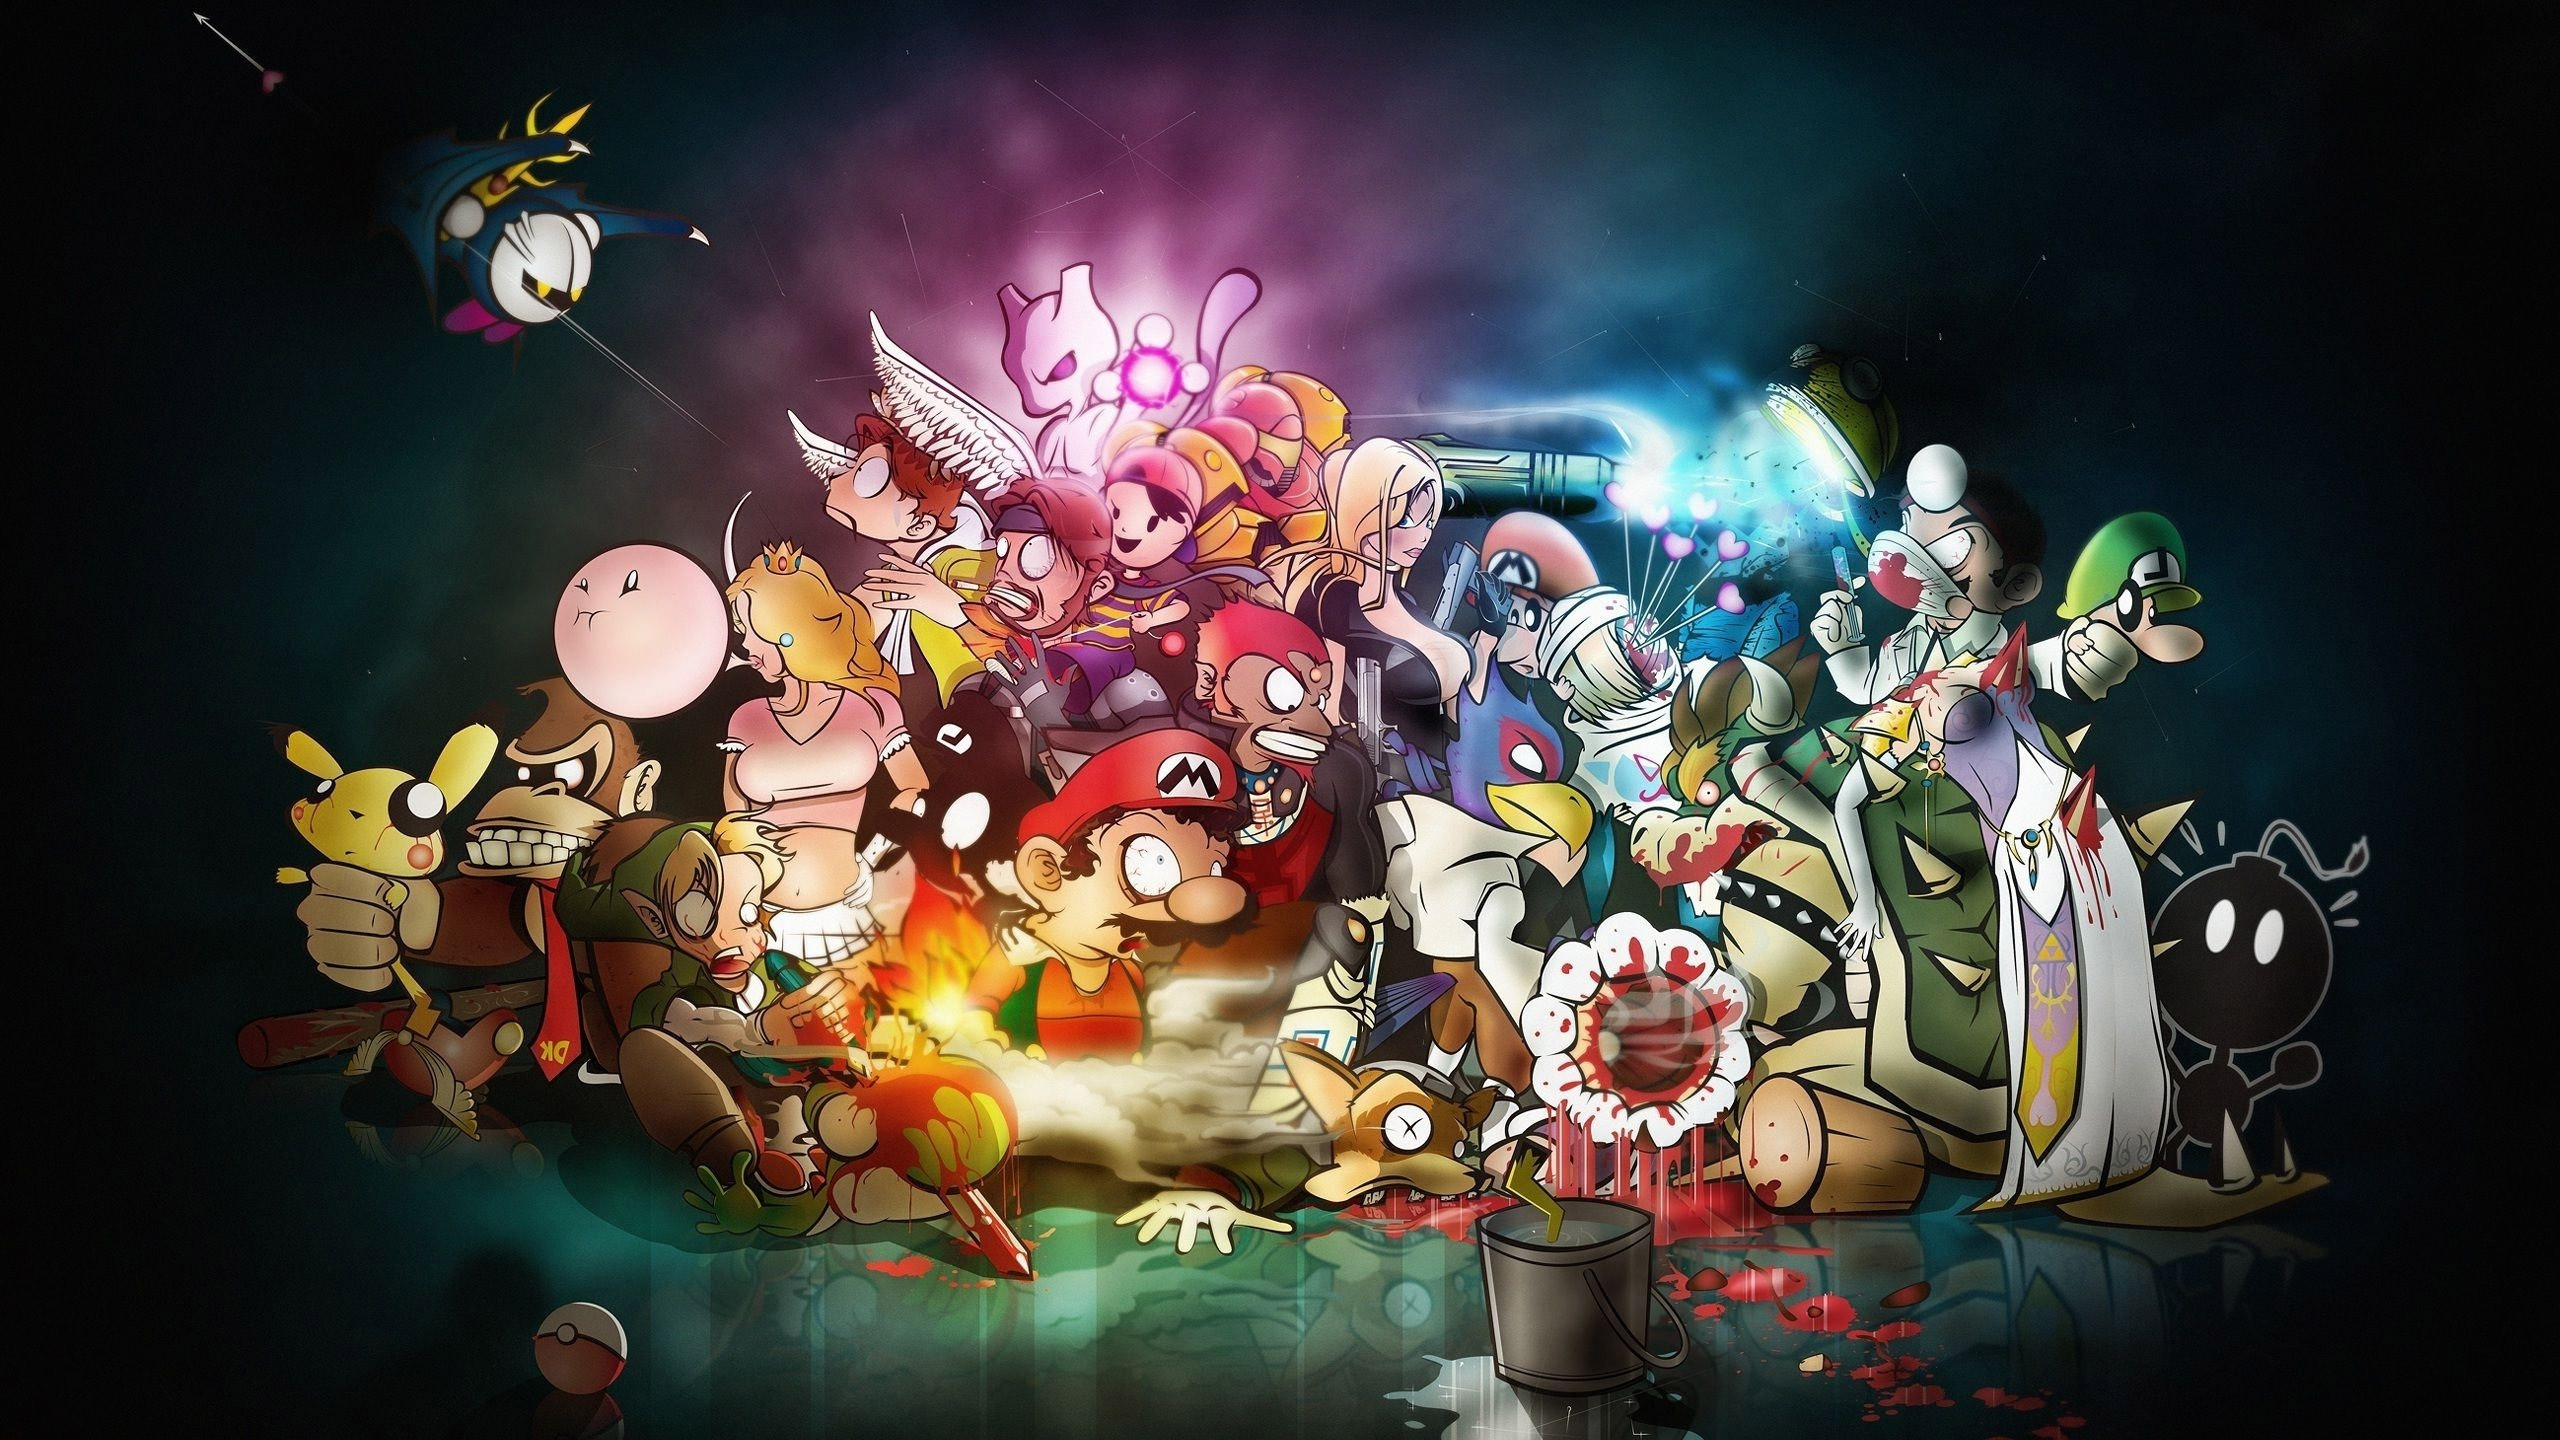 awesome video game wallpaper mashups (72+ images)